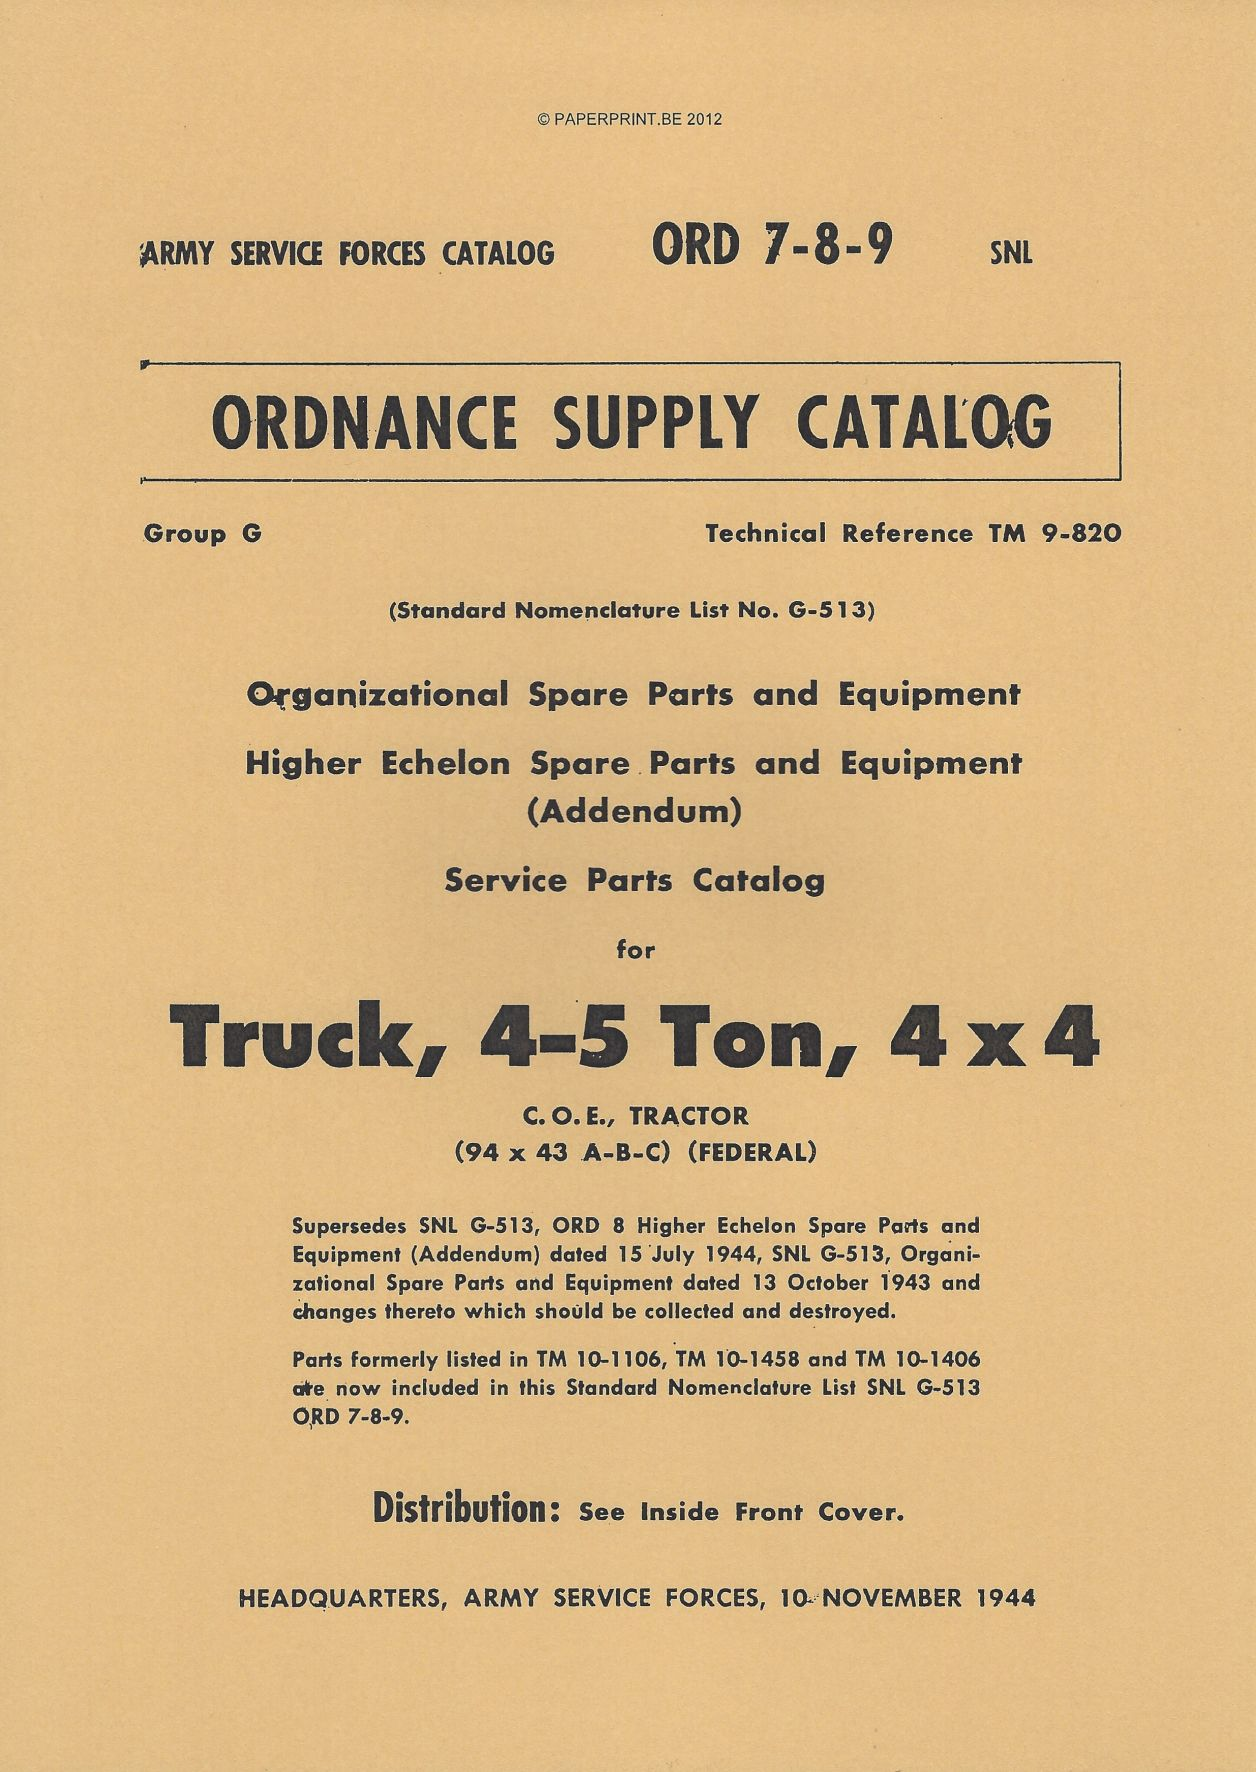 SNL G-513 US SERVICE PARTS CATALOG FOR TRUCK, 4-5 TON, 4x4 C.O.E TRACTOR (94 x 43 A-B-C) (FEDERAL)